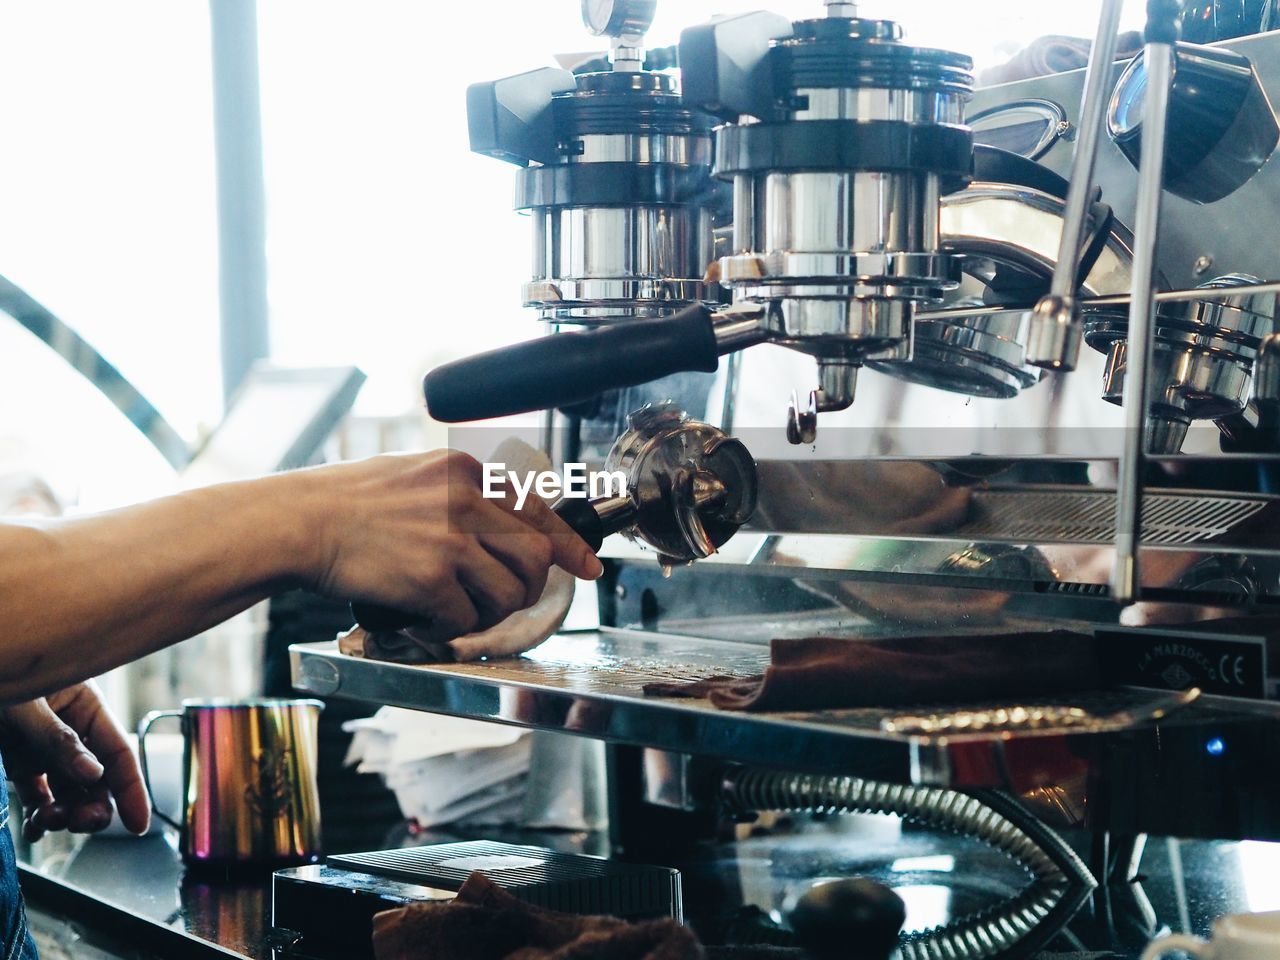 Cropped Hand Cleaning Espresso Maker